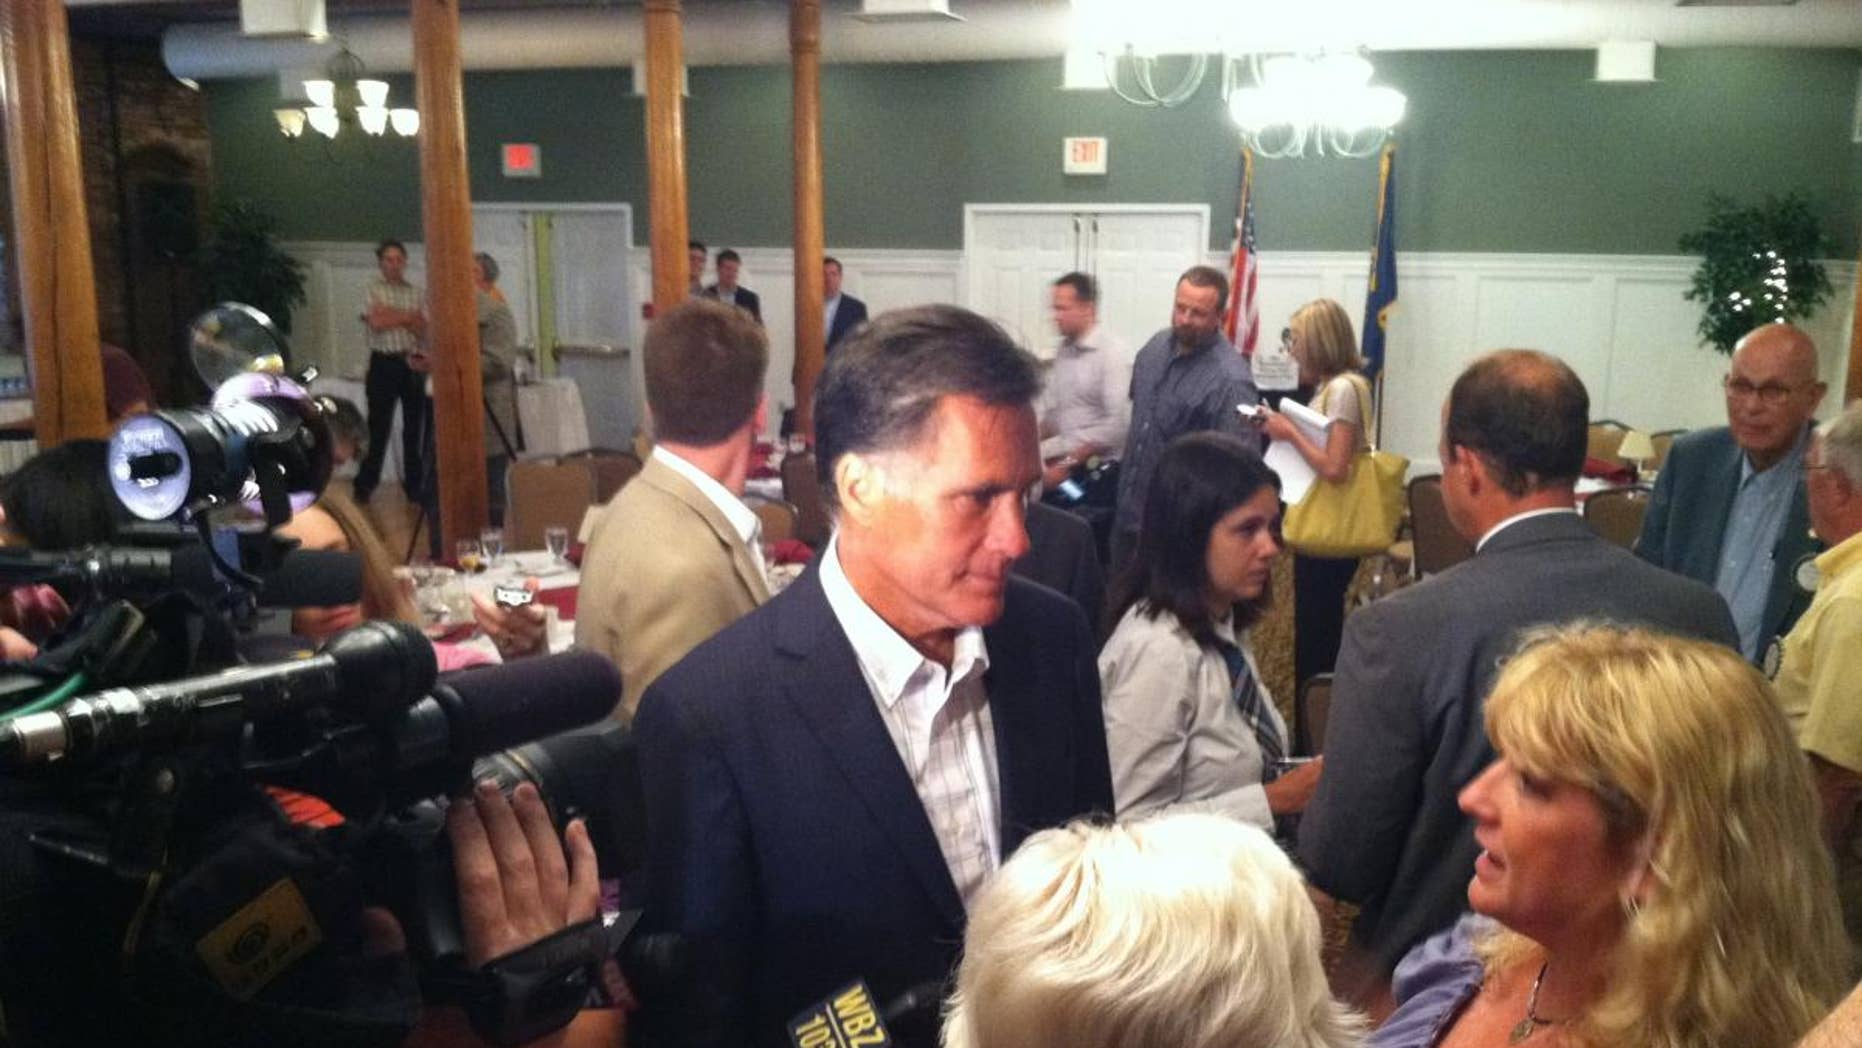 Mitt Romney talks to reporters in New Hampshire. (Fox News Photo)